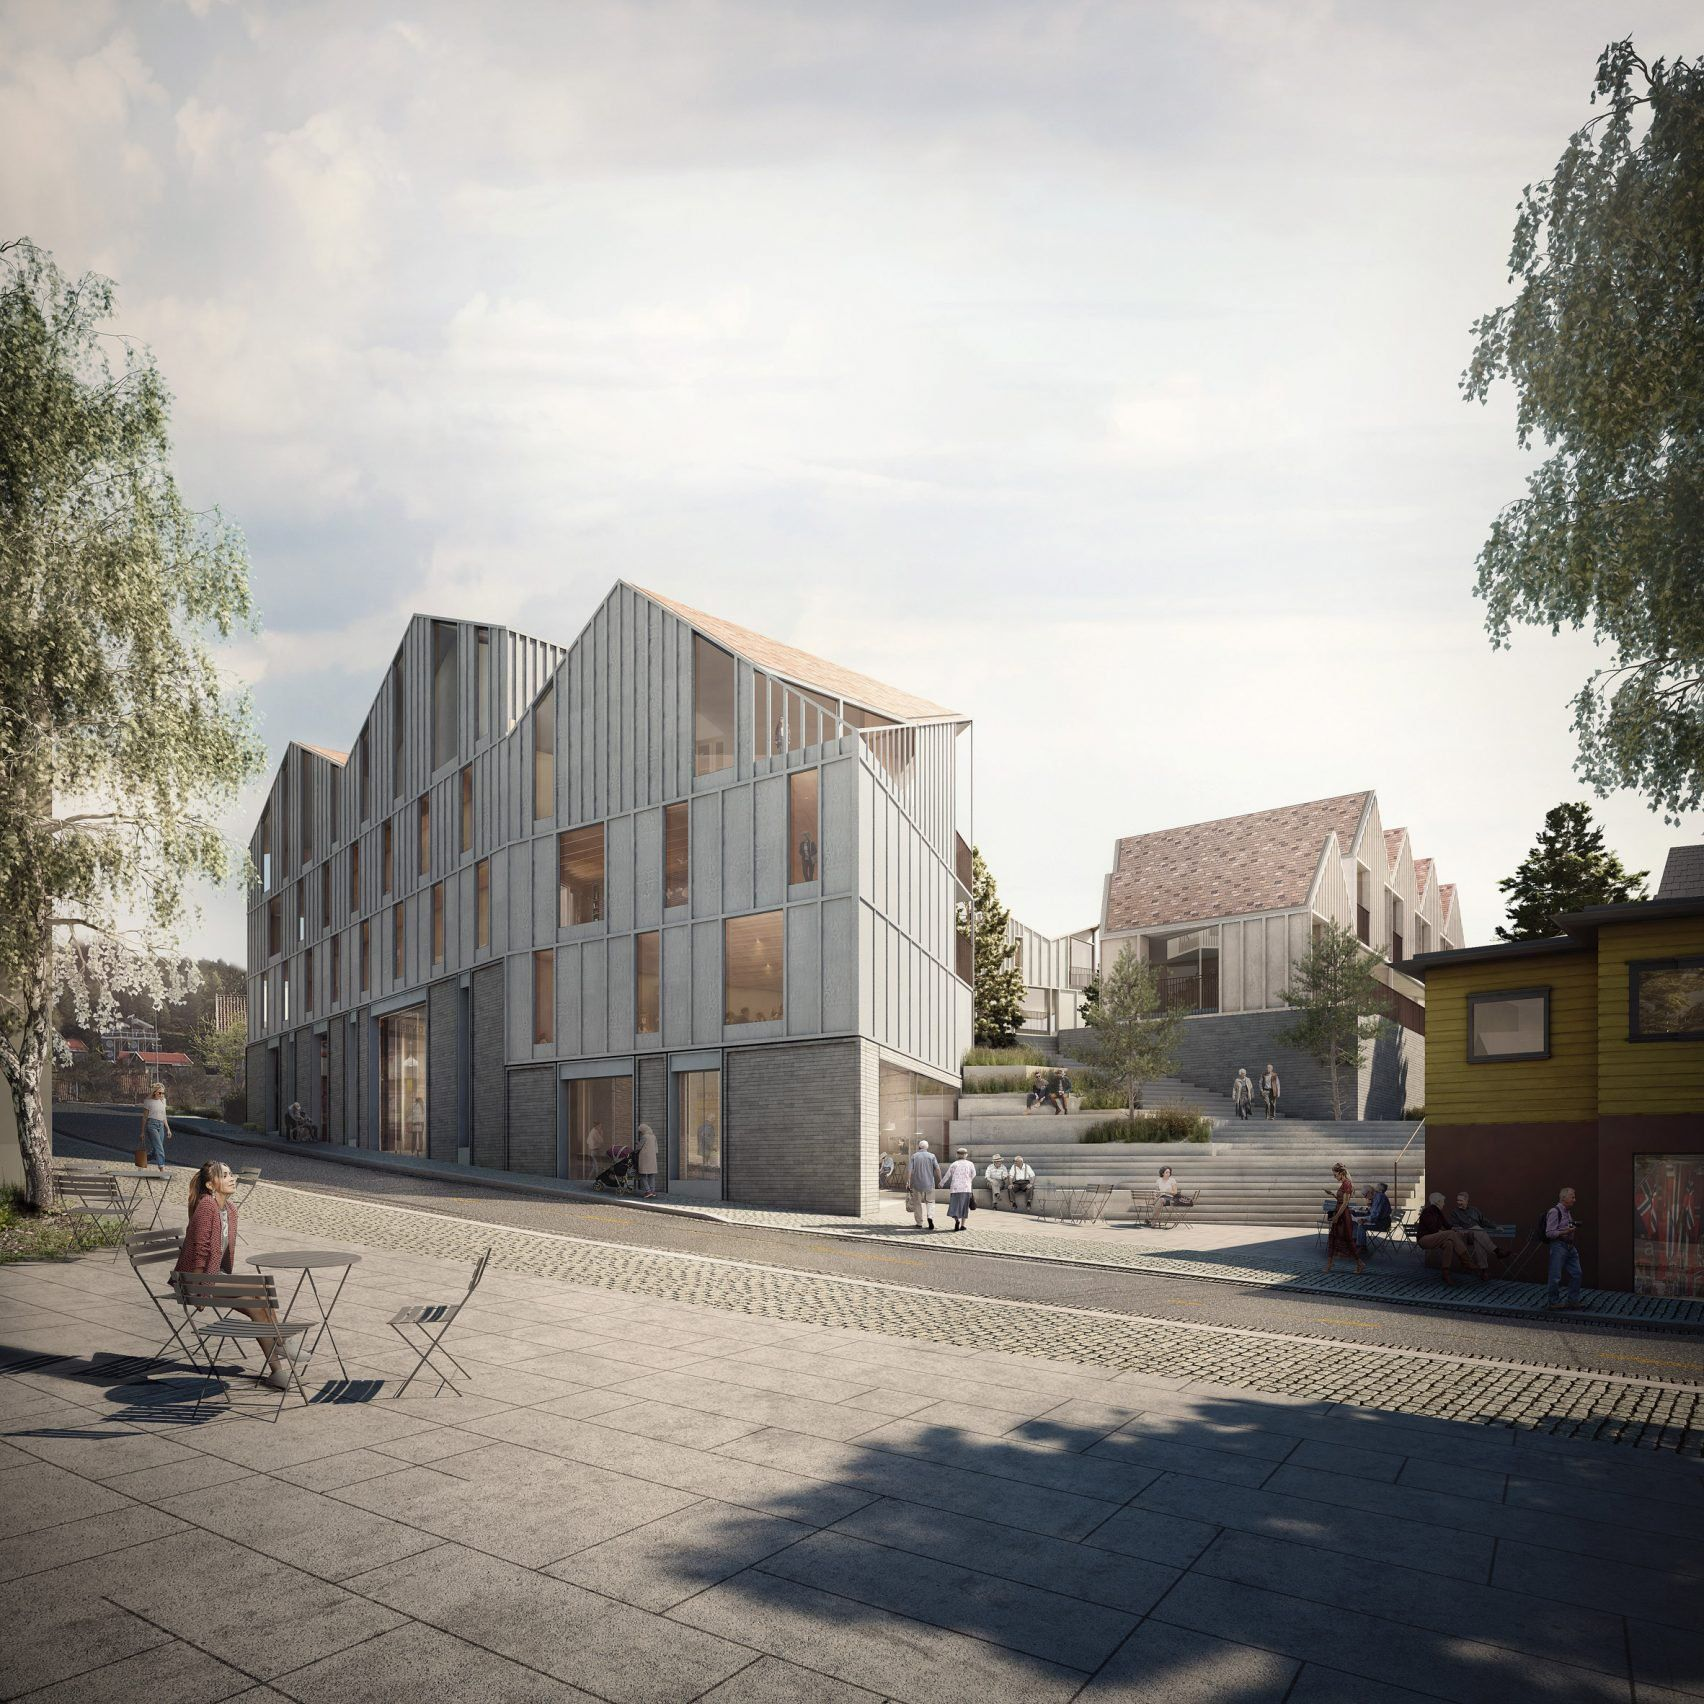 Home Design Ideas For Seniors: Haptic Designs Elderly Housing For Norway To Encourage